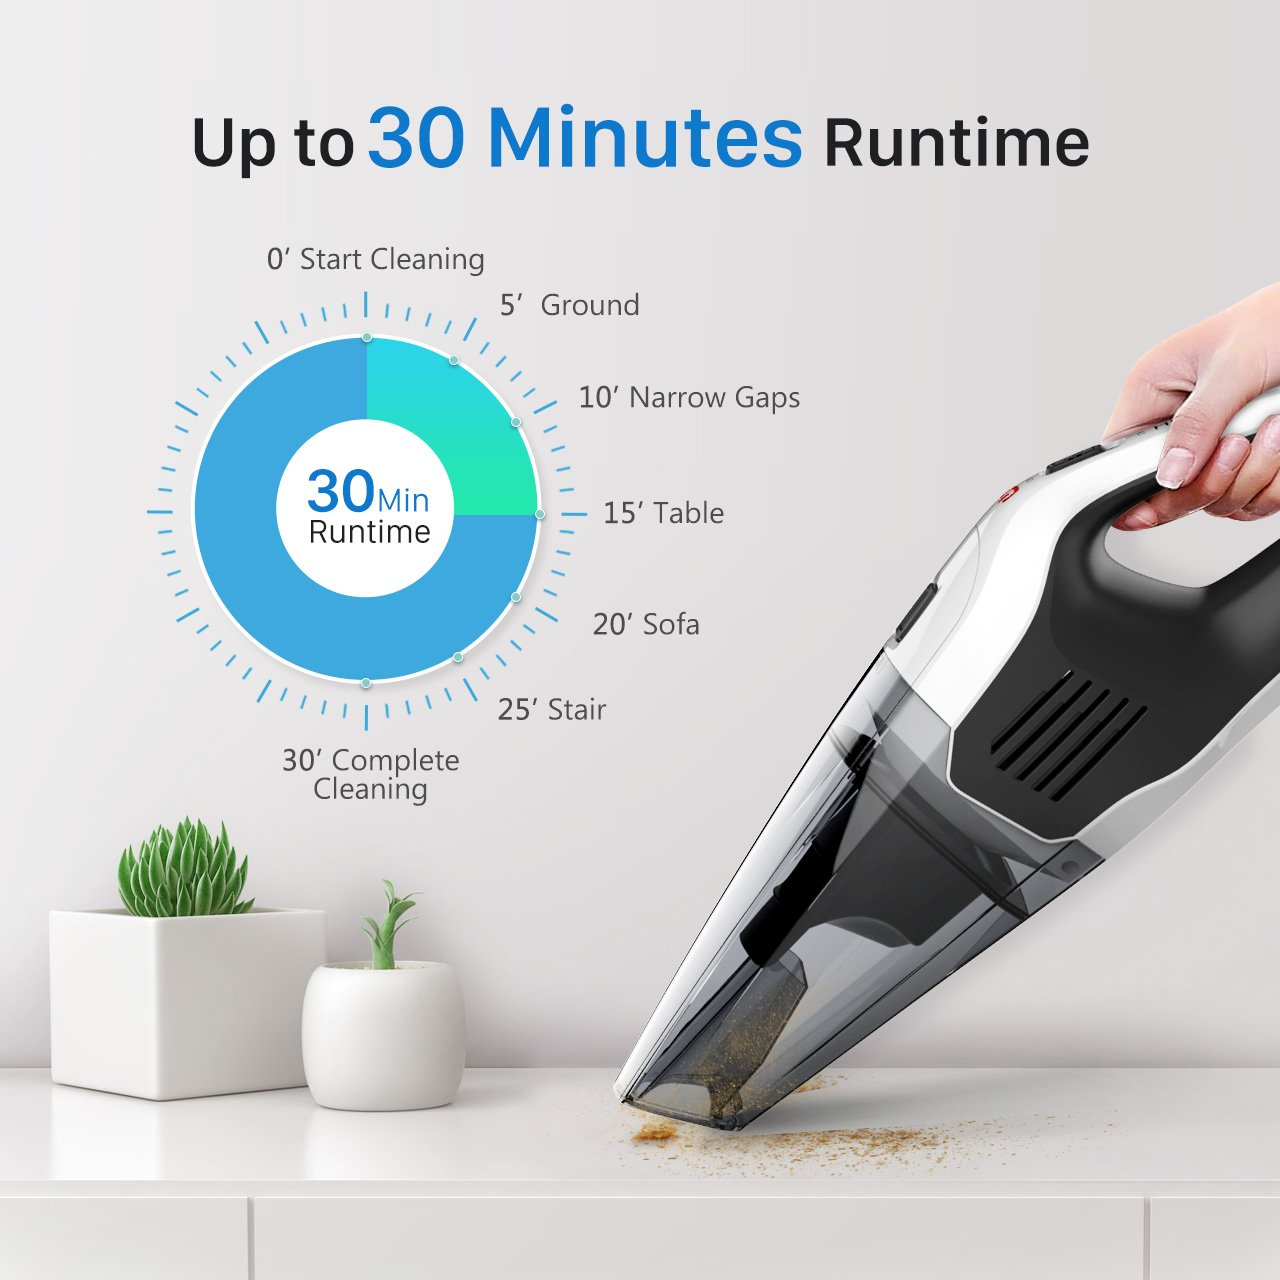 Handheld Vacuum Cordless, Holife 6KPA Hand Vacuum Cleaner Rechargeable Hand Vac, 14.8V Lithium with Quick Charge, Lightweight Wet Dry Vacuum for Home Pet Hair Car Cleaning (Upgraded Version) by HoLife (Image #3)